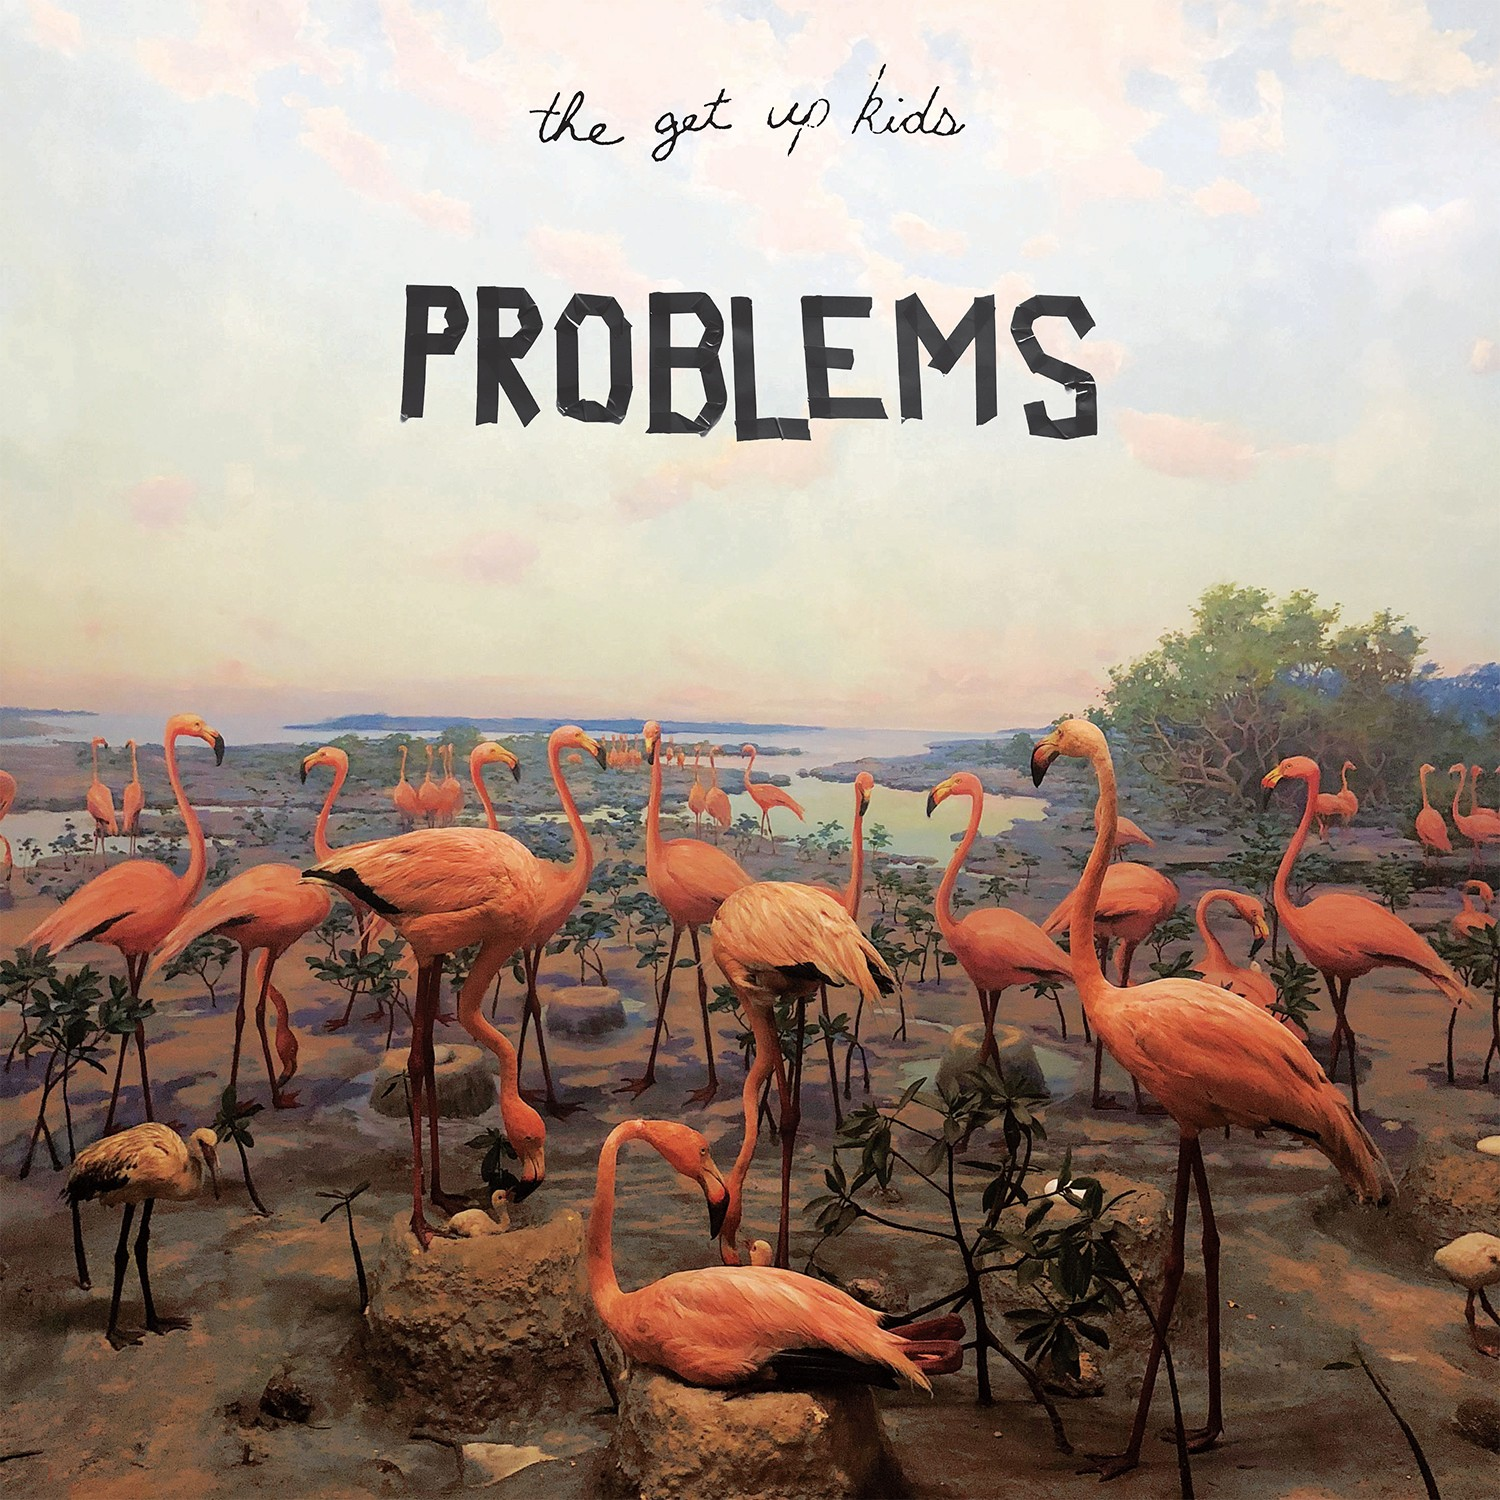 The Get Up Kids Album 'Problems' Available to Stream